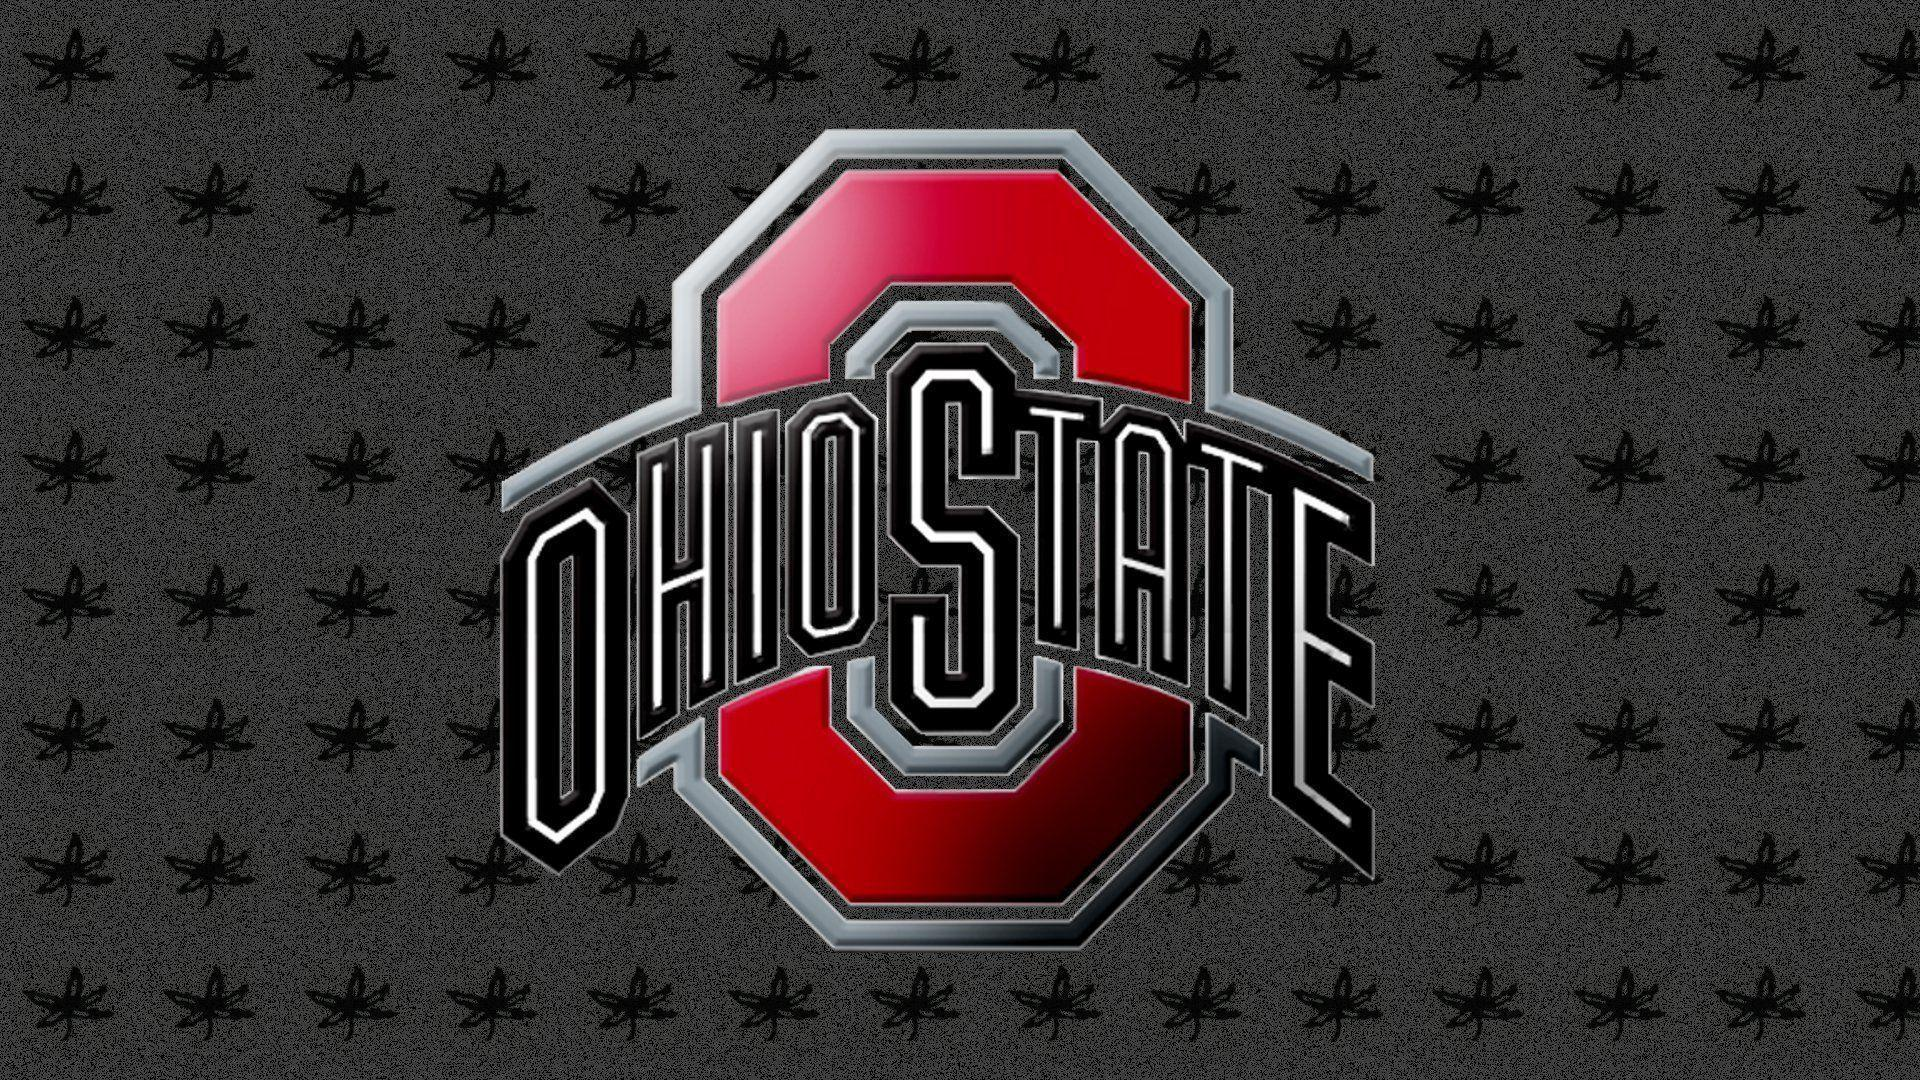 OSU Desktop Wallpaper 55